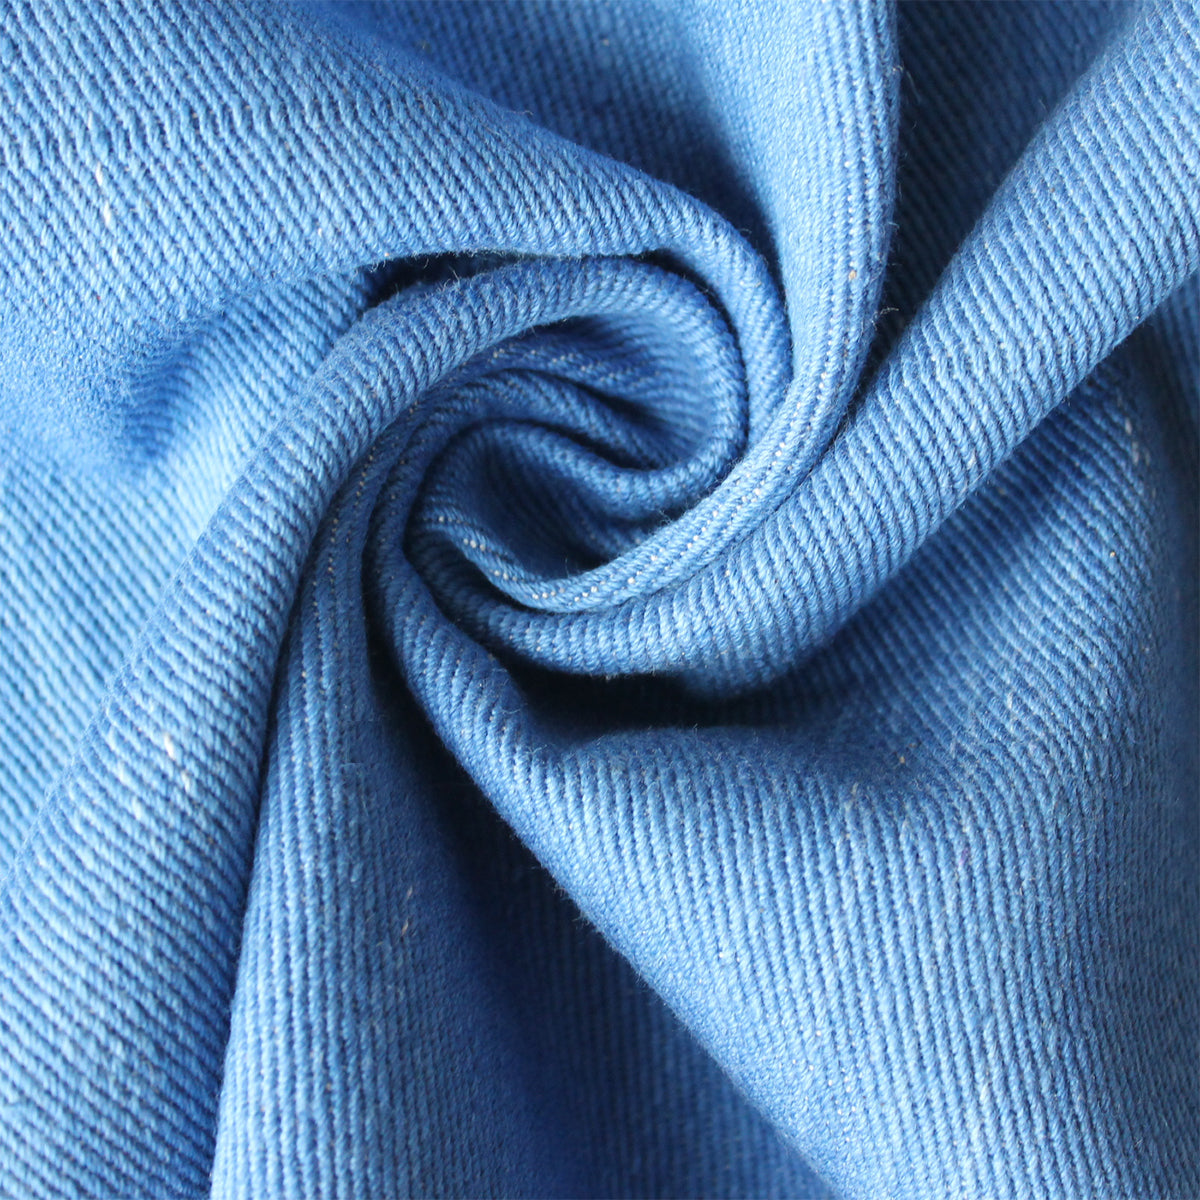 Light blue indigo selvedge denim fabric close up